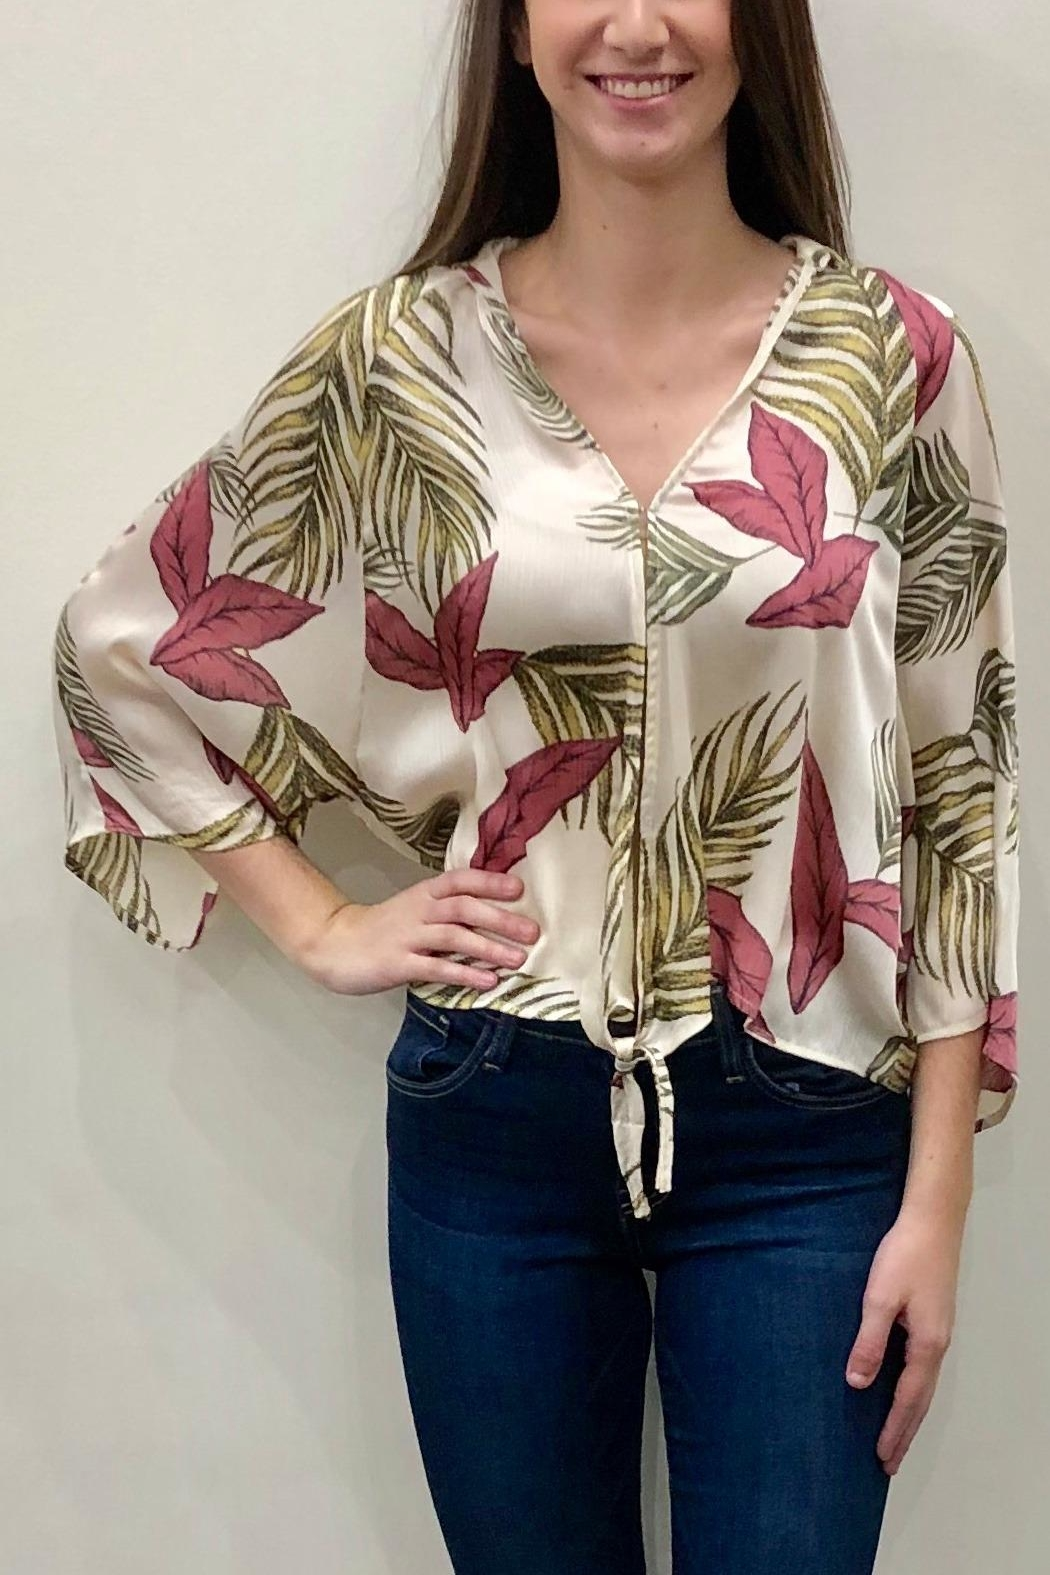 eaee0e29bef9 AAKAA Printed Tie Blouse from Ohio by Apricot Lane - Pinecrest ...